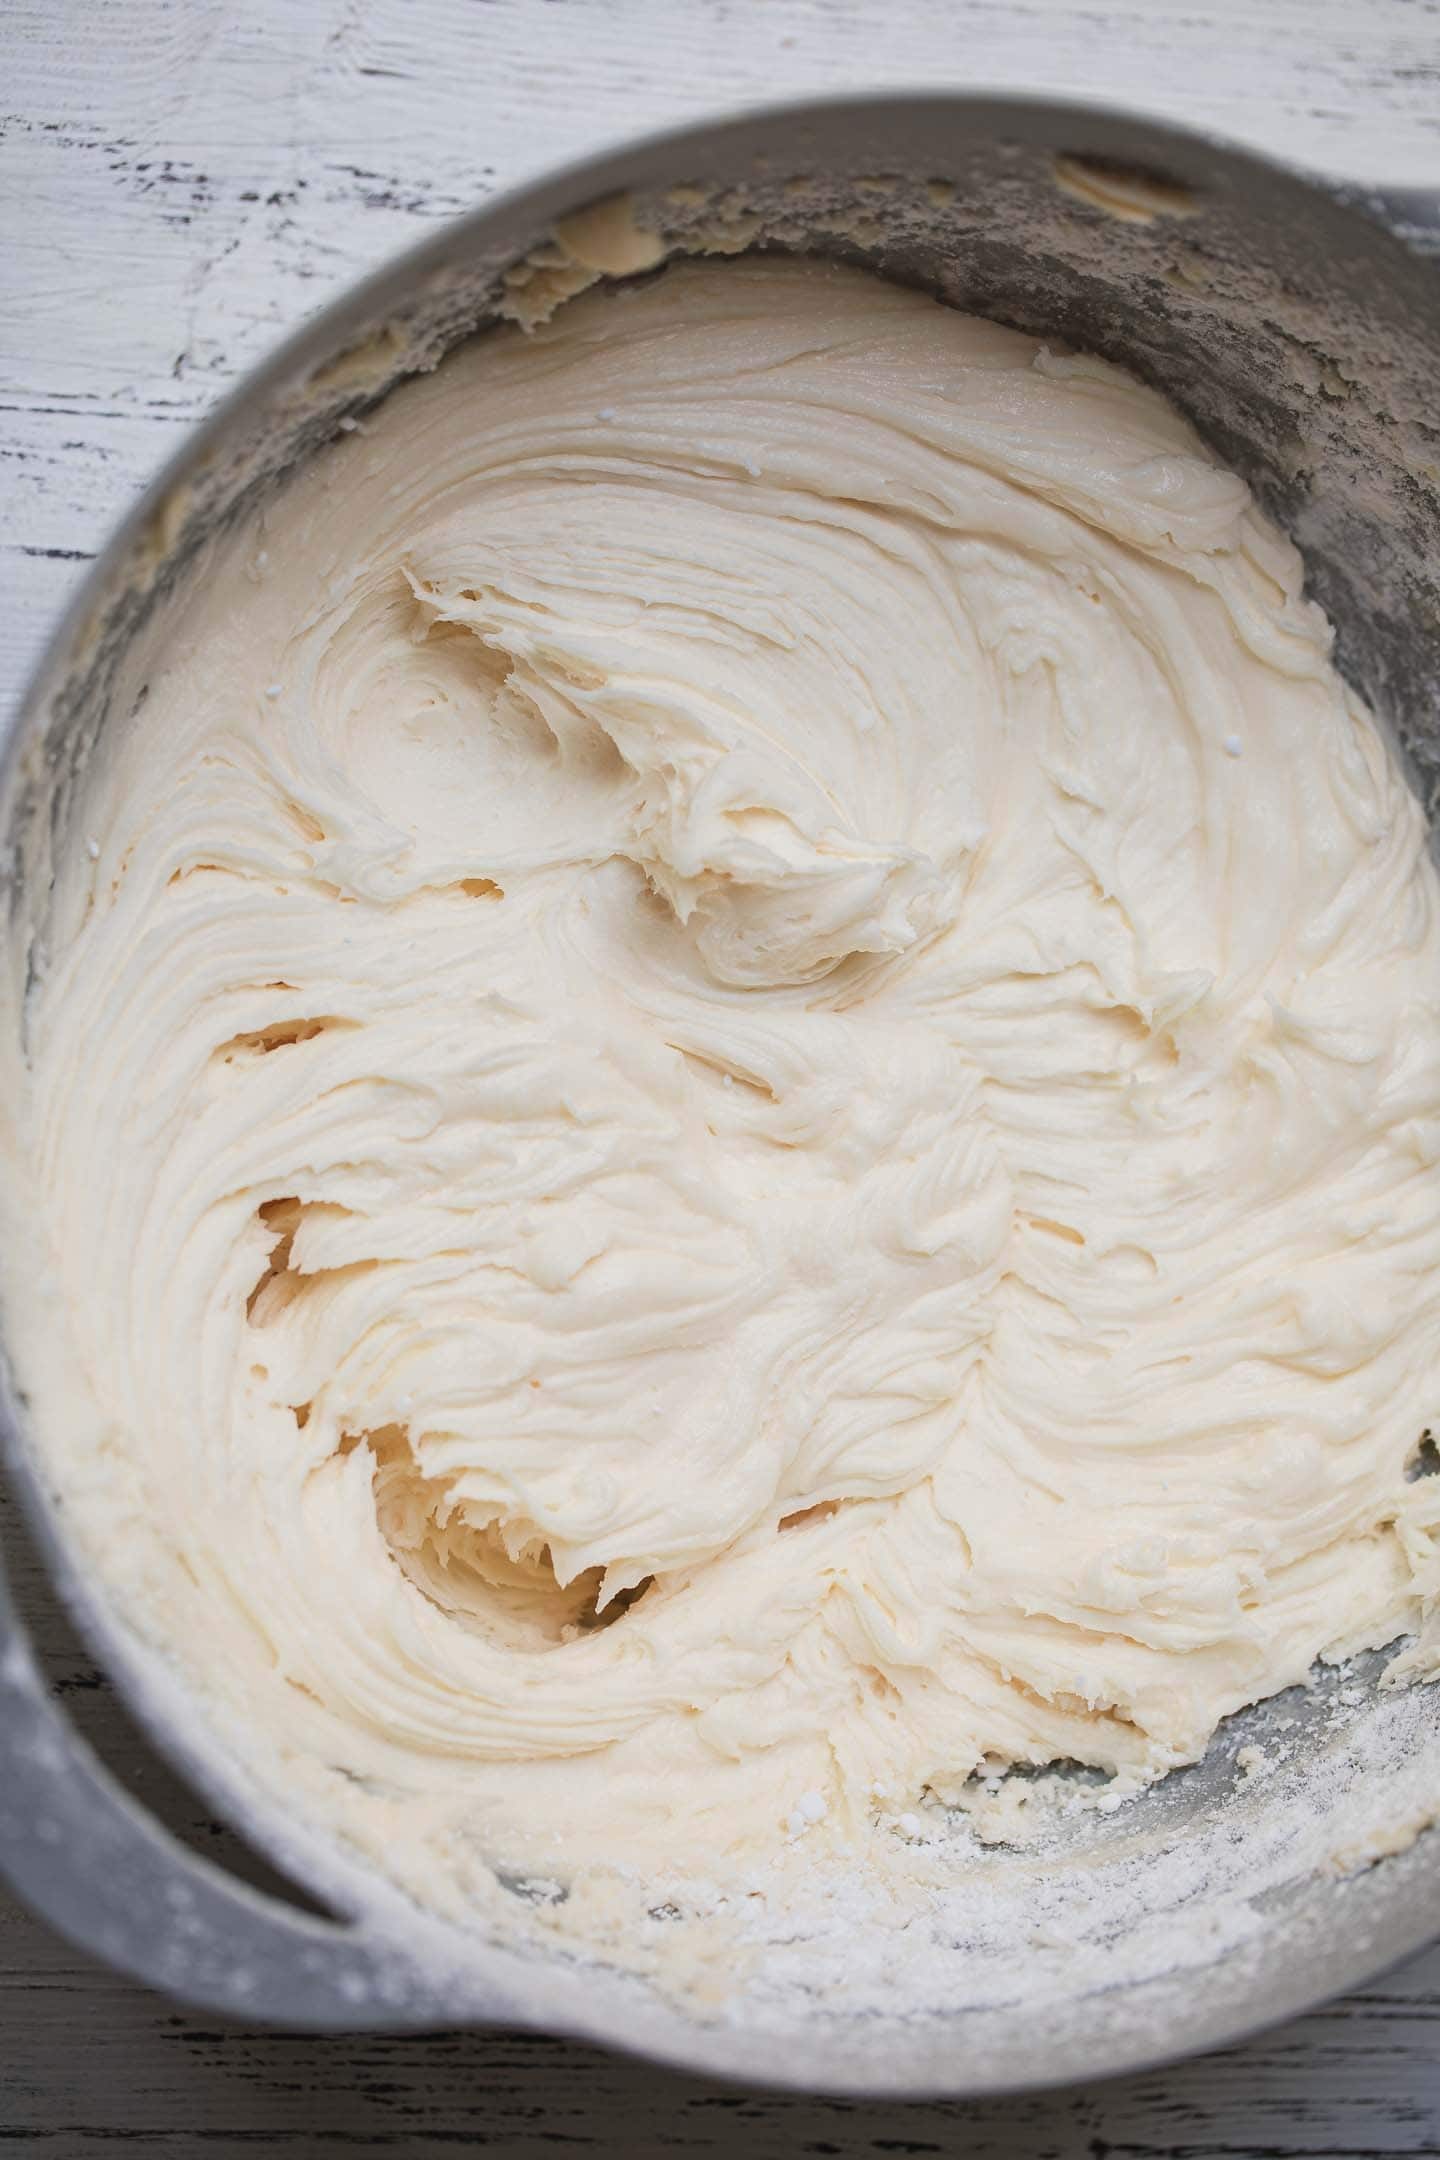 Vegan cream cheese icing in a mixing bowl